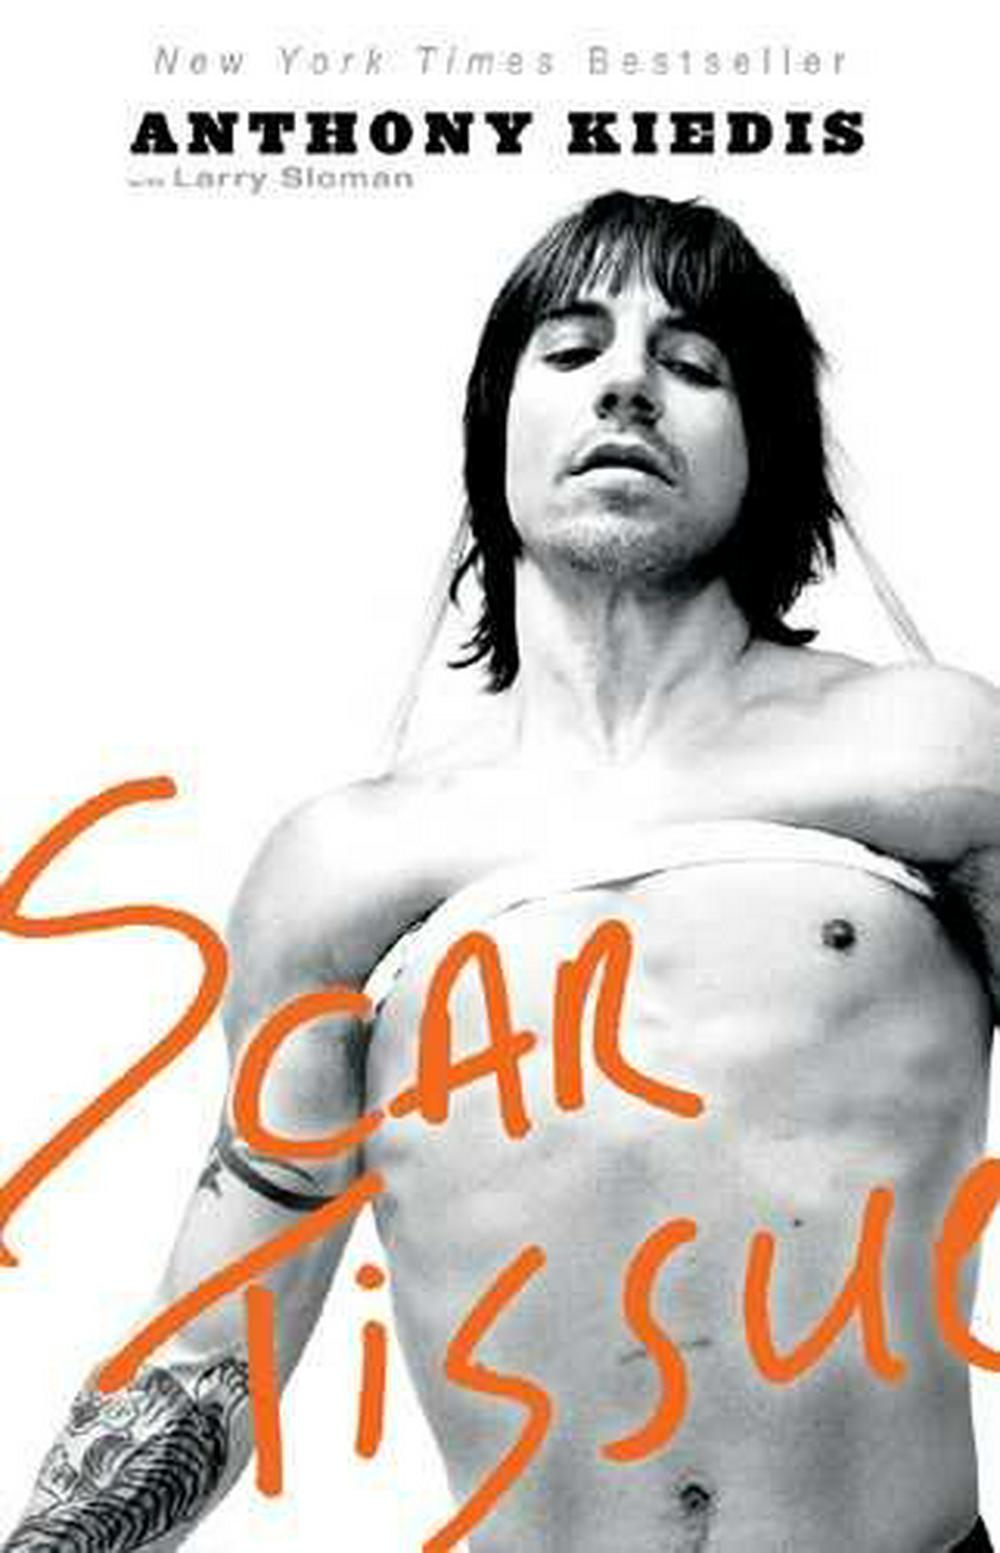 Scar Tissue by Anthony Kiedis, ISBN: 9781401307455